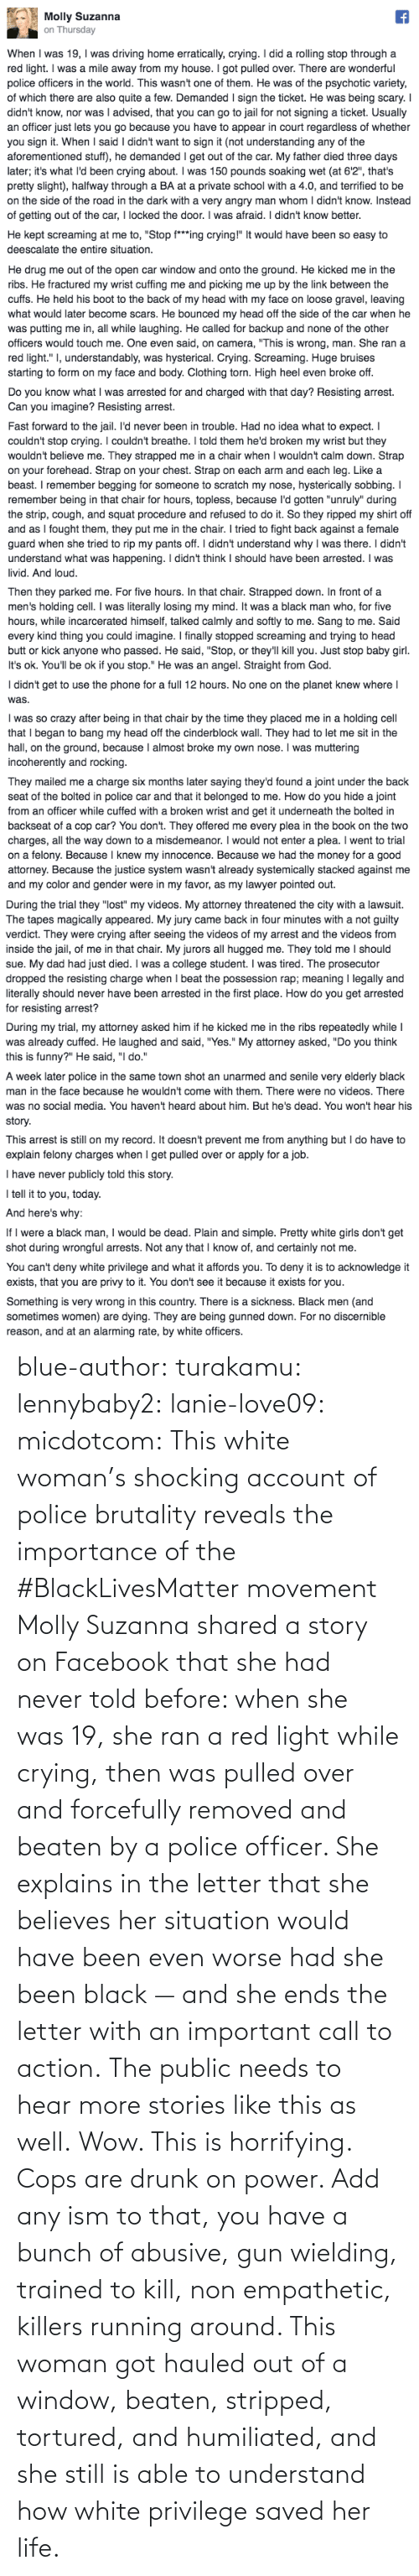 White: blue-author: turakamu:  lennybaby2:  lanie-love09:  micdotcom:  This white woman's shocking account of police brutality reveals the importance of the #BlackLivesMatter movement Molly Suzanna shared a story on Facebook that she had never told before: when she was 19, she ran a red light while crying, then was pulled over and forcefully removed and beaten by a police officer. She explains in the letter that she believes her situation would have been even worse had she been black — and she ends the letter with an important call to action.  The public needs to hear more stories like this as well.  Wow. This is horrifying.  Cops are drunk on power. Add any ism to that, you have a bunch of abusive, gun wielding, trained to kill, non empathetic, killers running around.    This woman got hauled out of a window, beaten, stripped, tortured, and humiliated, and she still is able to understand how white privilege saved her life.